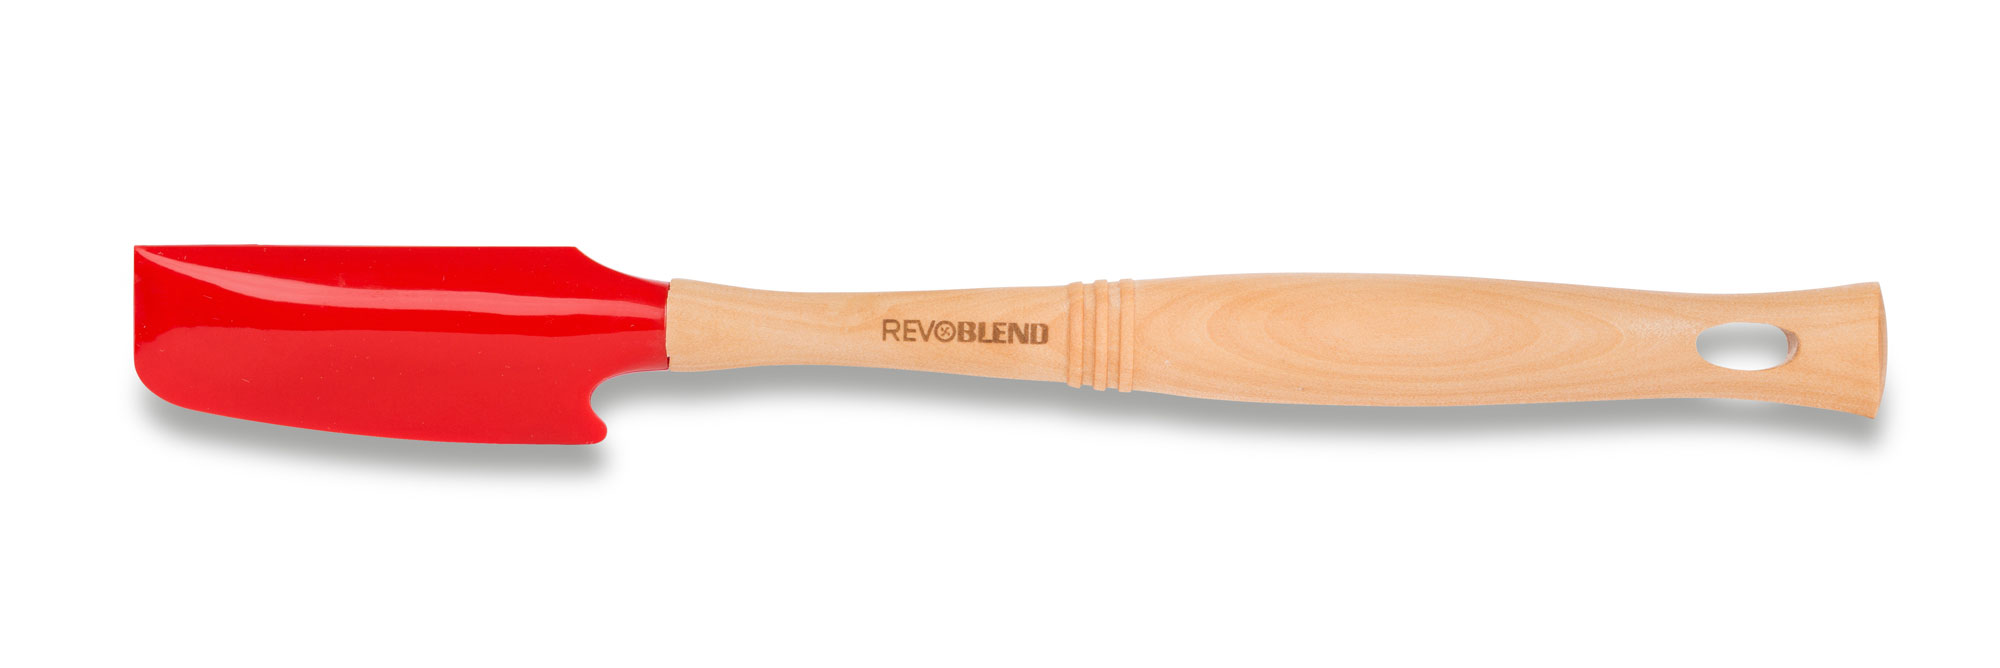 RevosTool Silicone spatula for your Revoblend Blender